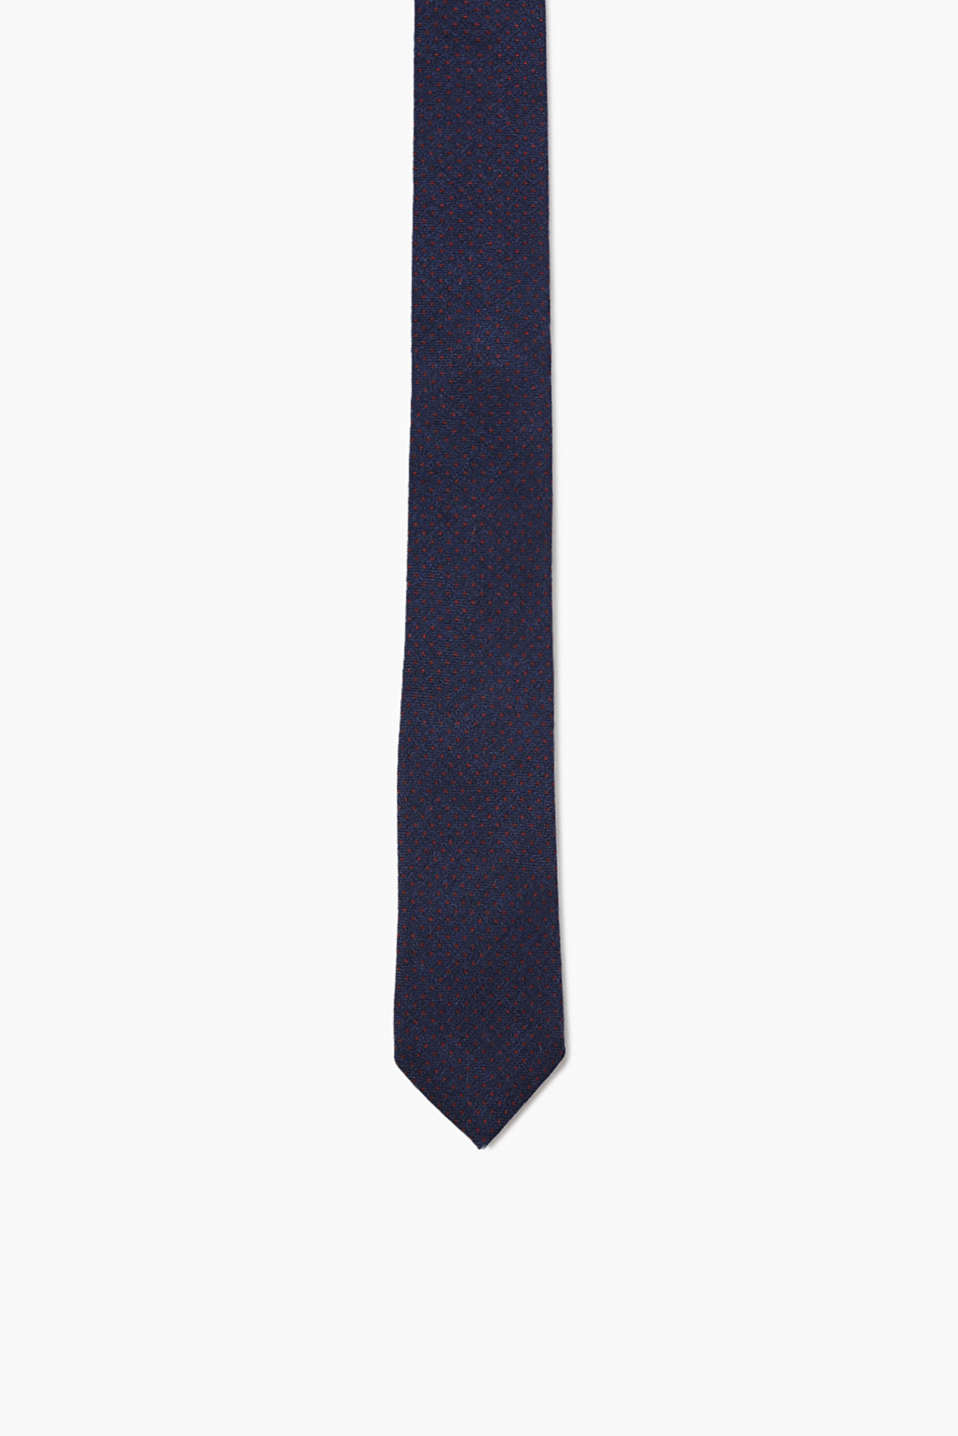 Pure wool tie with a polka dot pattern